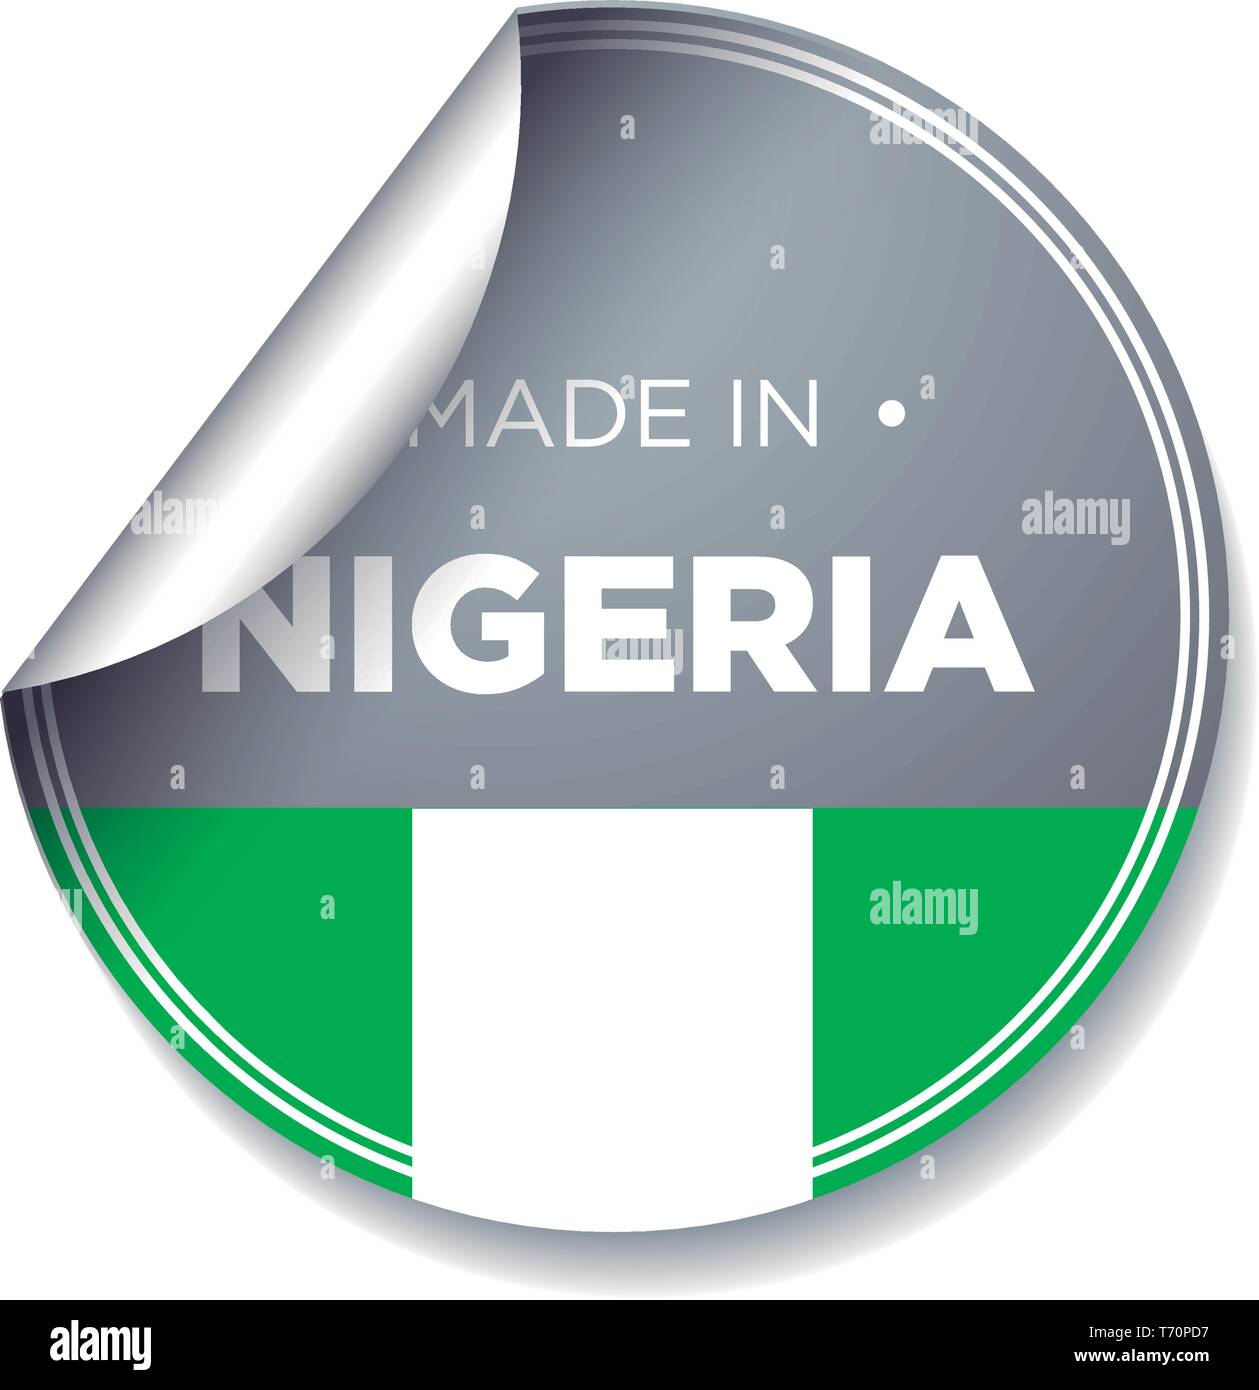 MADE IN NIGERIA - Stock Vector